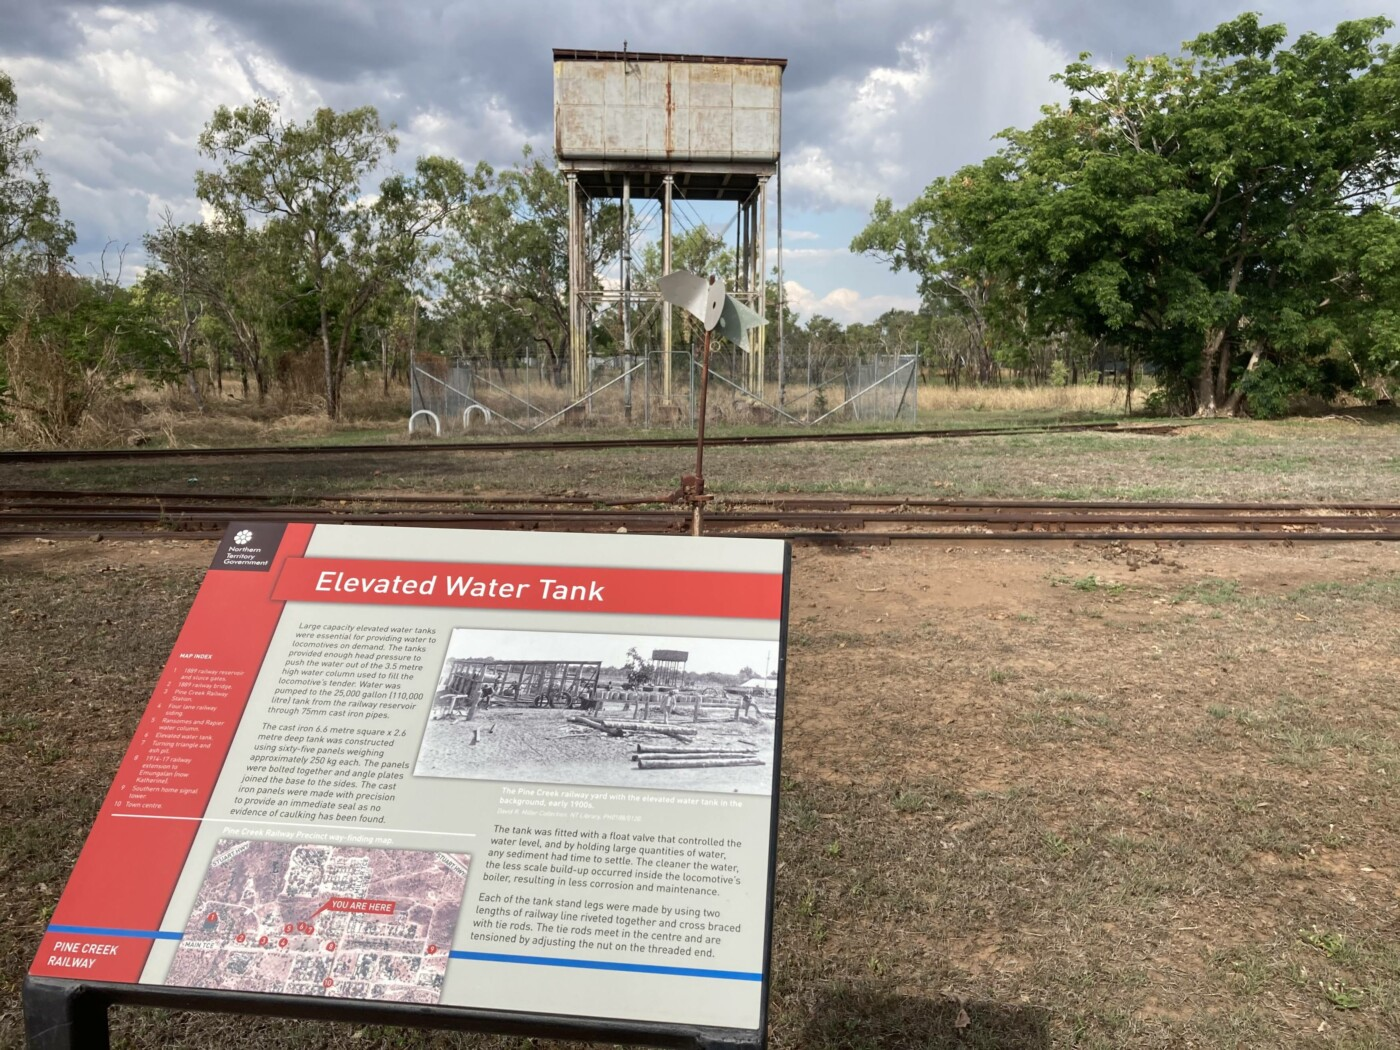 Elevated Water Tank and signage (2020)